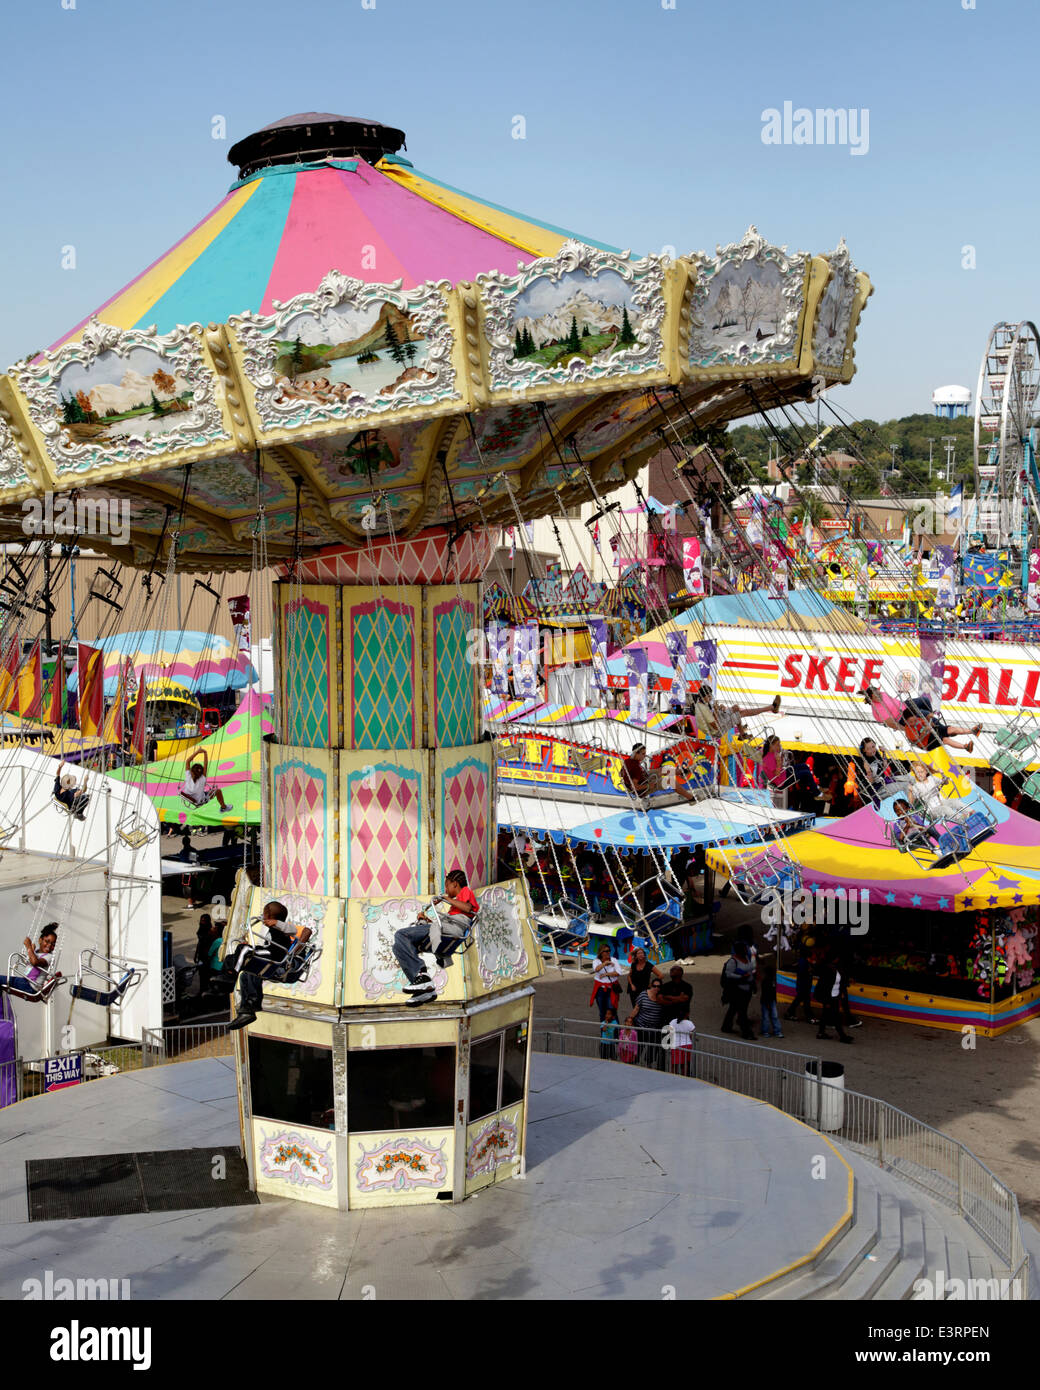 Sc State Fair >> The South Carolina State Fair Celebrating 144th Year Of Fun In Stock